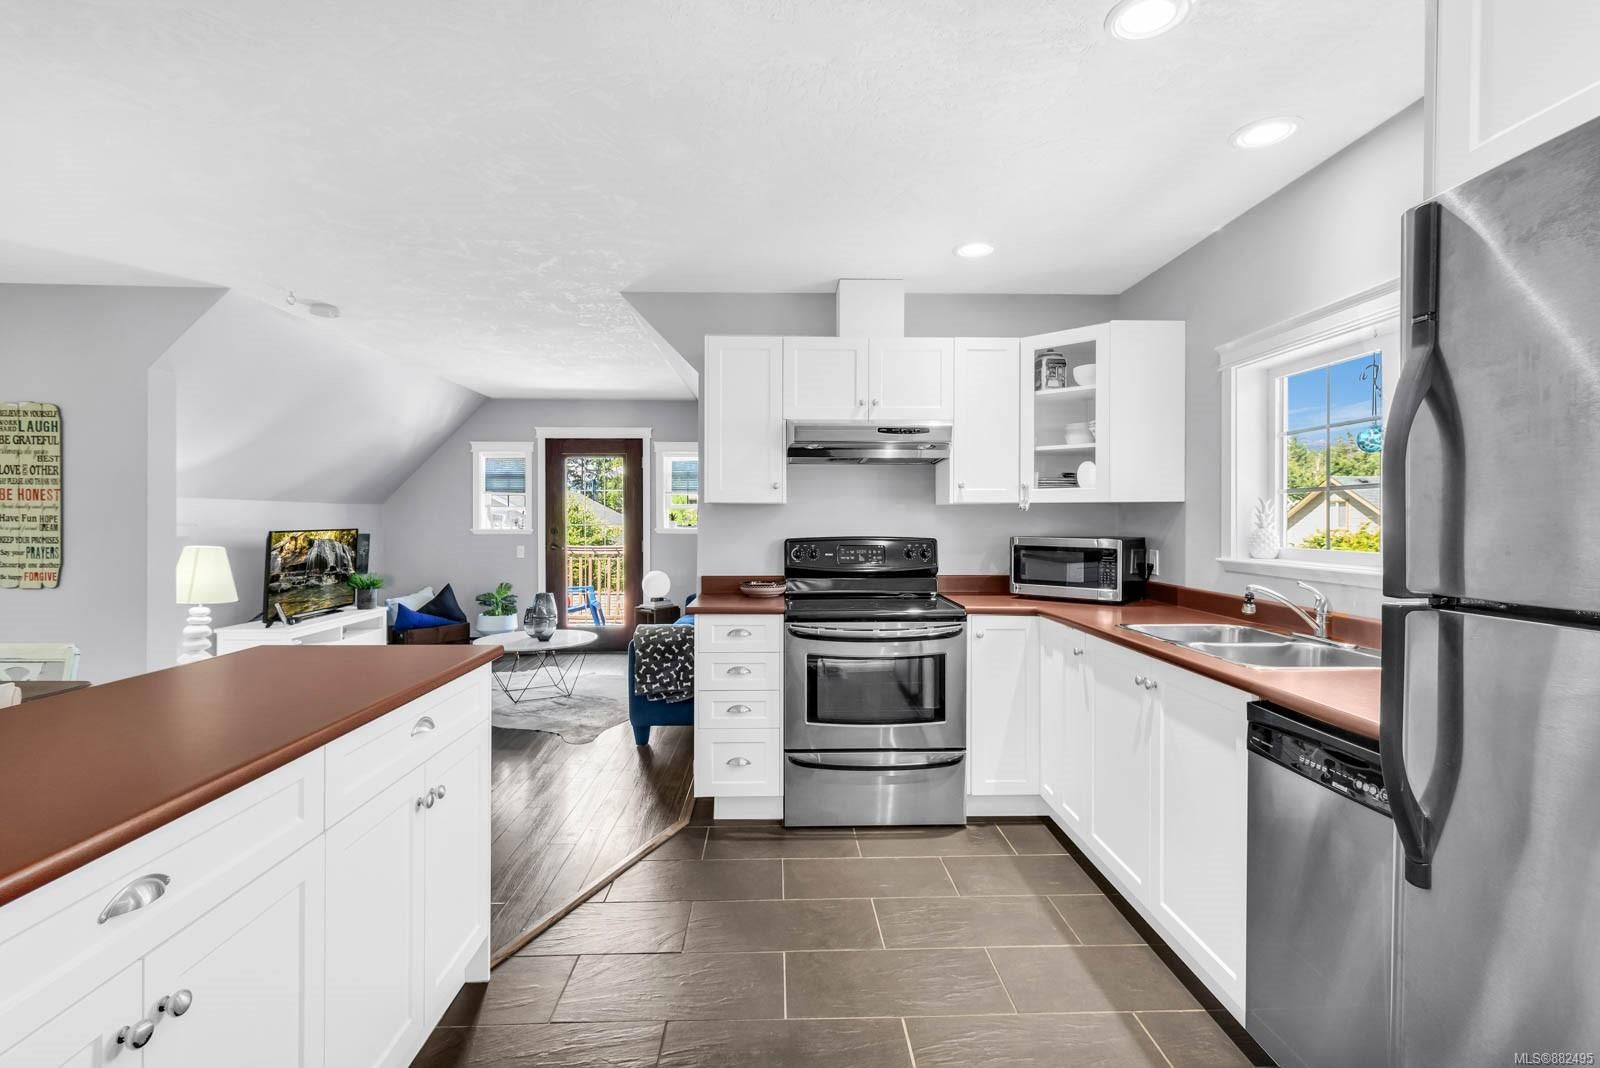 Photo 42: Photos: 375 Butchers Rd in : CV Comox (Town of) House for sale (Comox Valley)  : MLS®# 882495